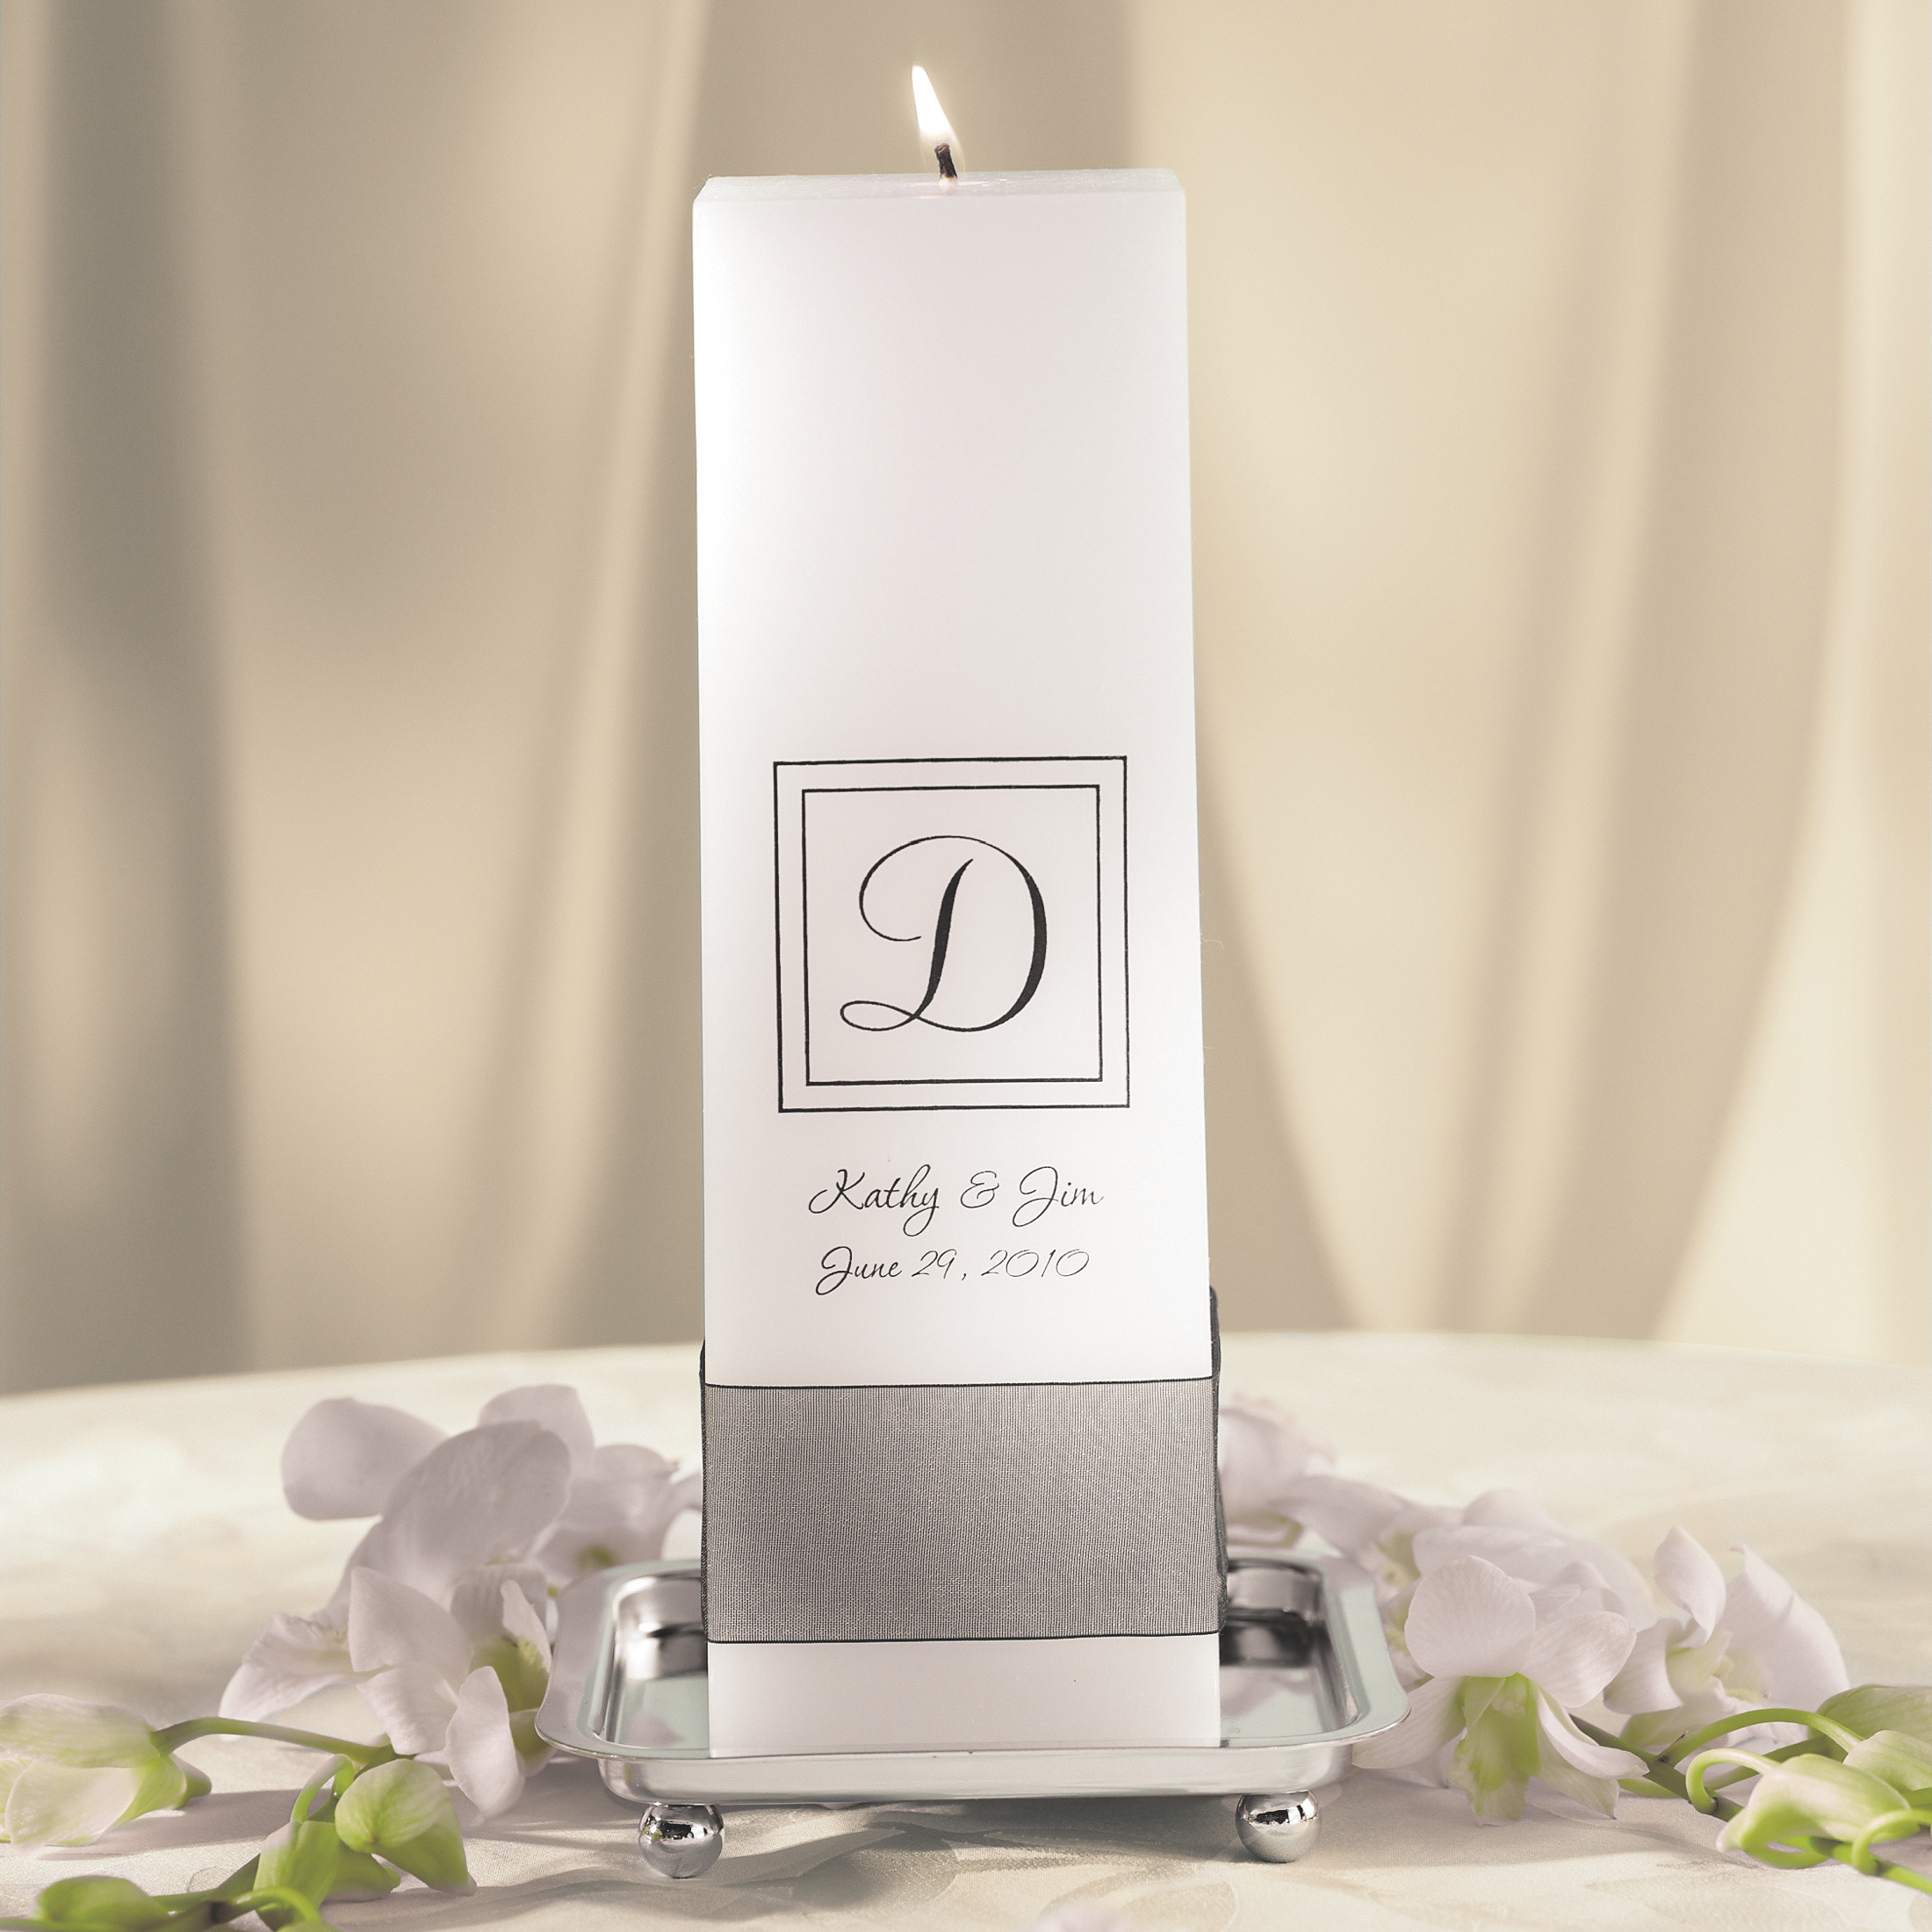 contemporary wedding unity candle wedding ceremony unity candles